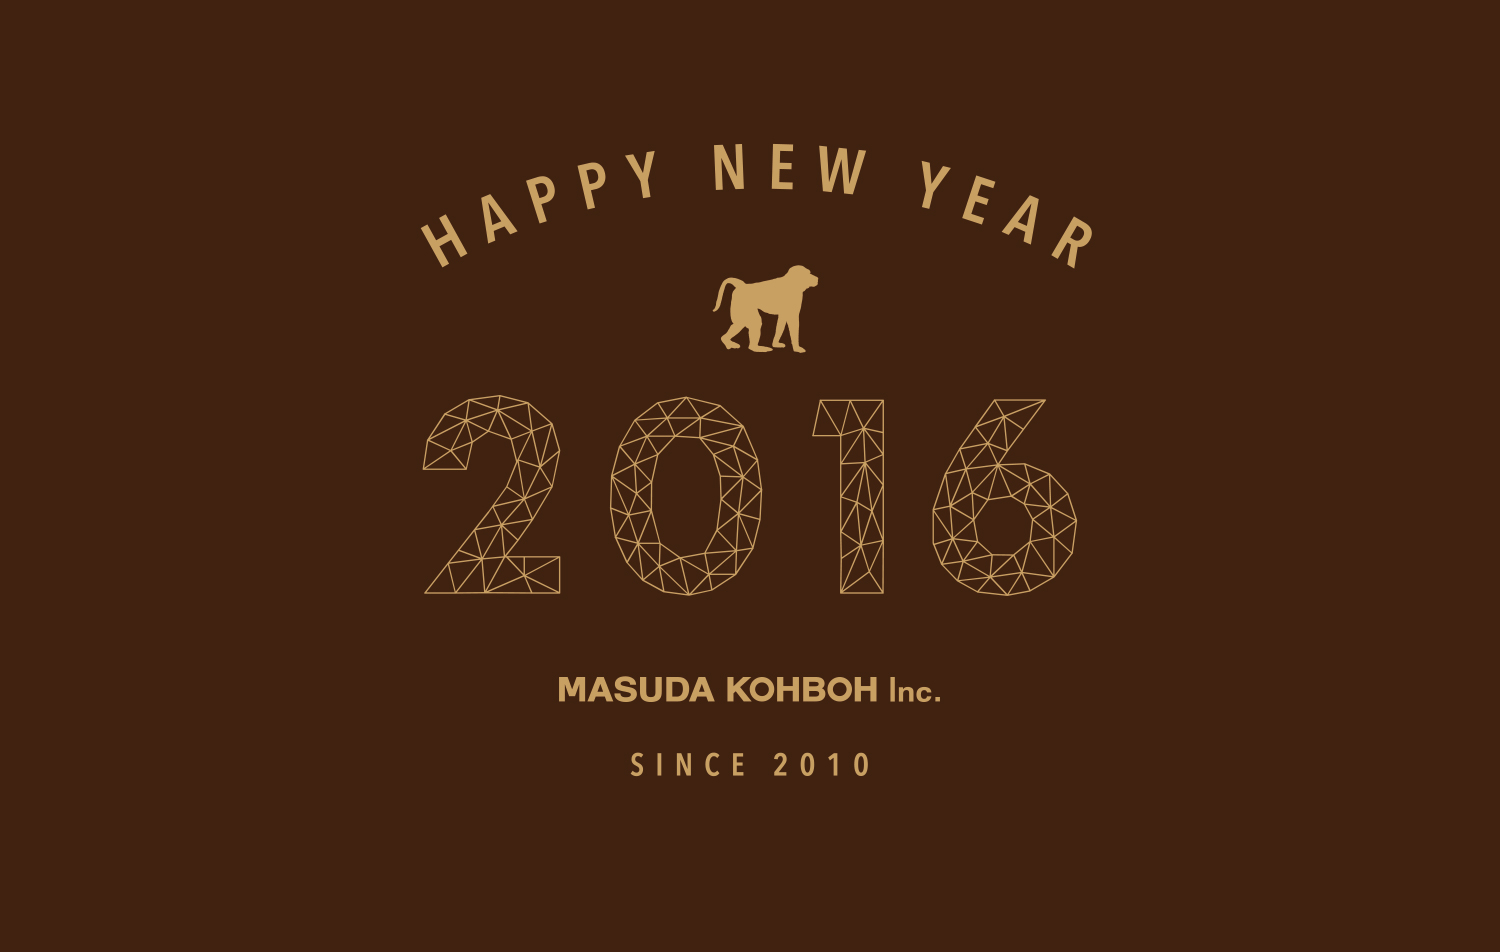 A Happy New Year 2016!